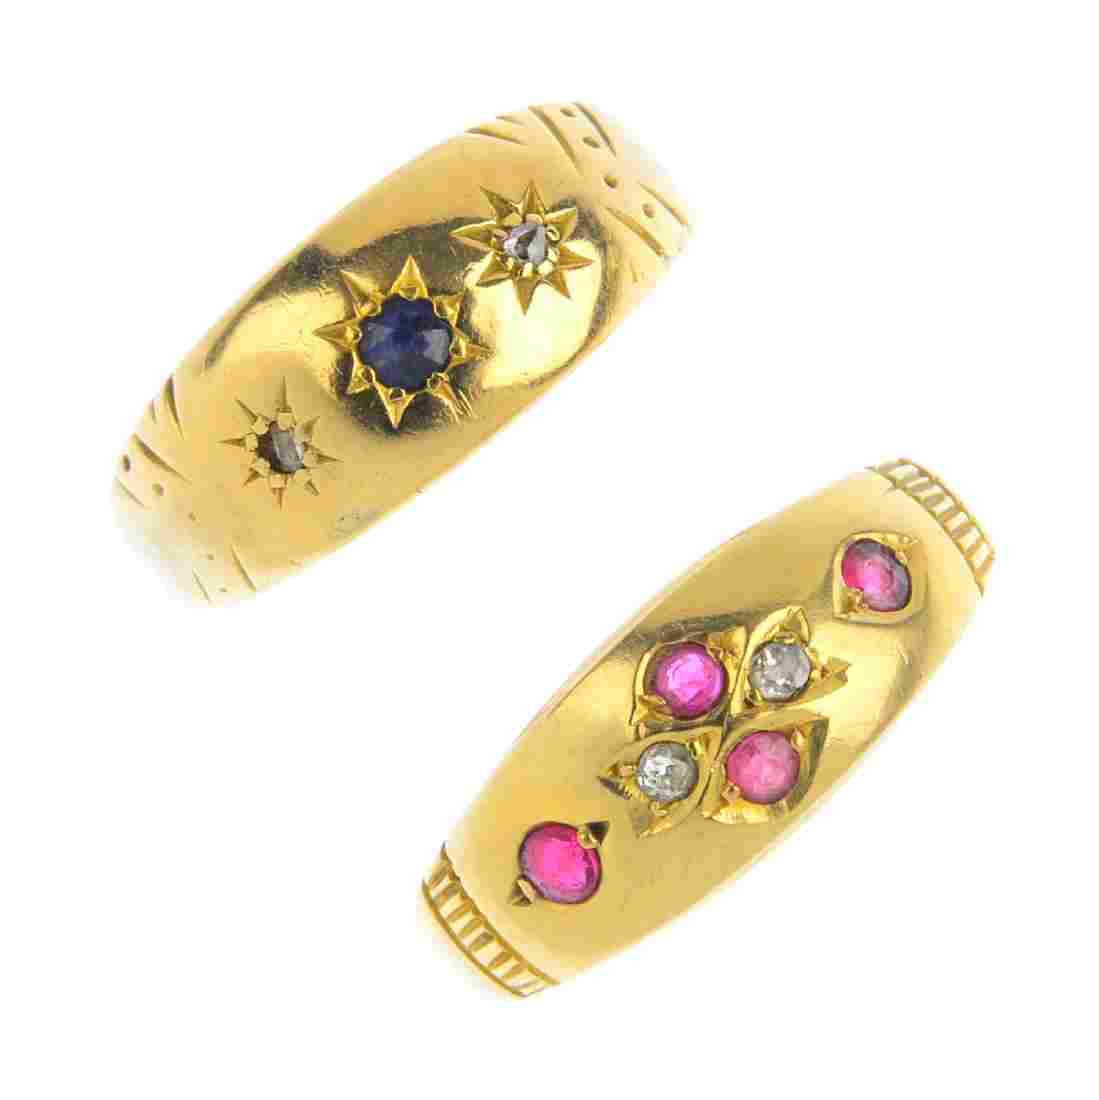 Two late Victorian 18ct gold diamond and gem-set rings.